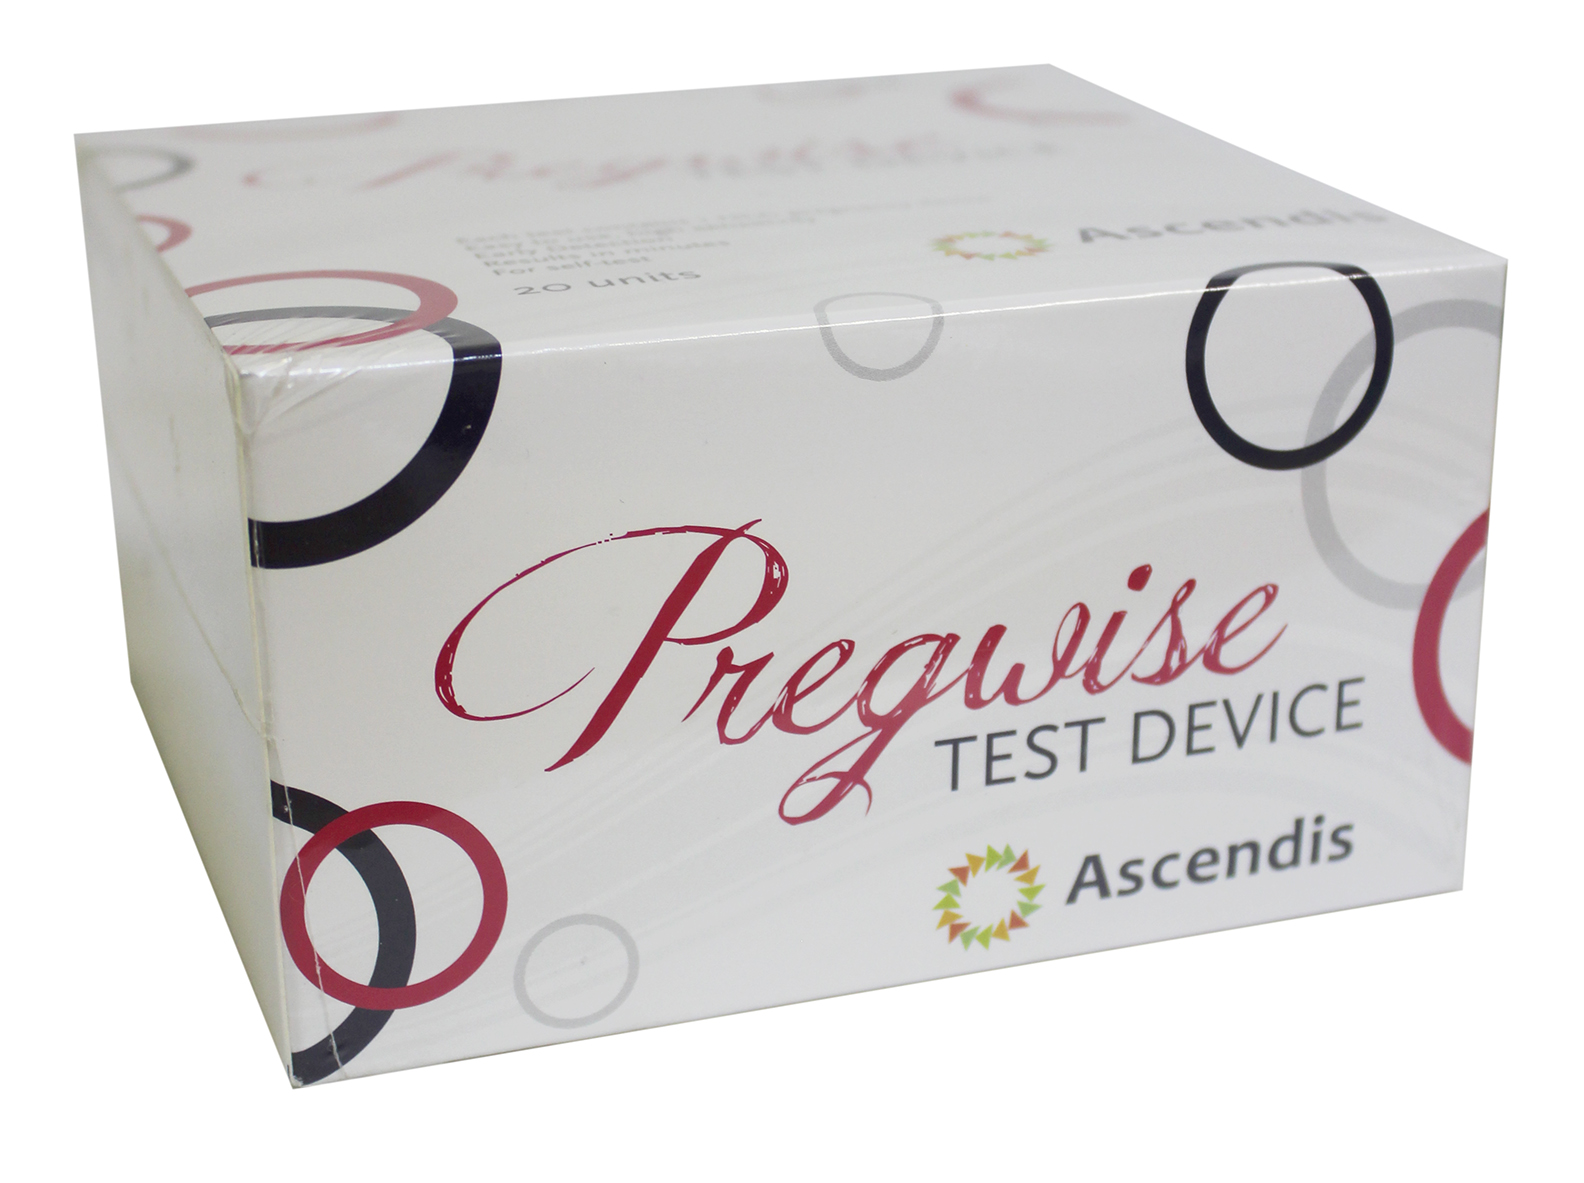 Pregwise Test Device 20 units